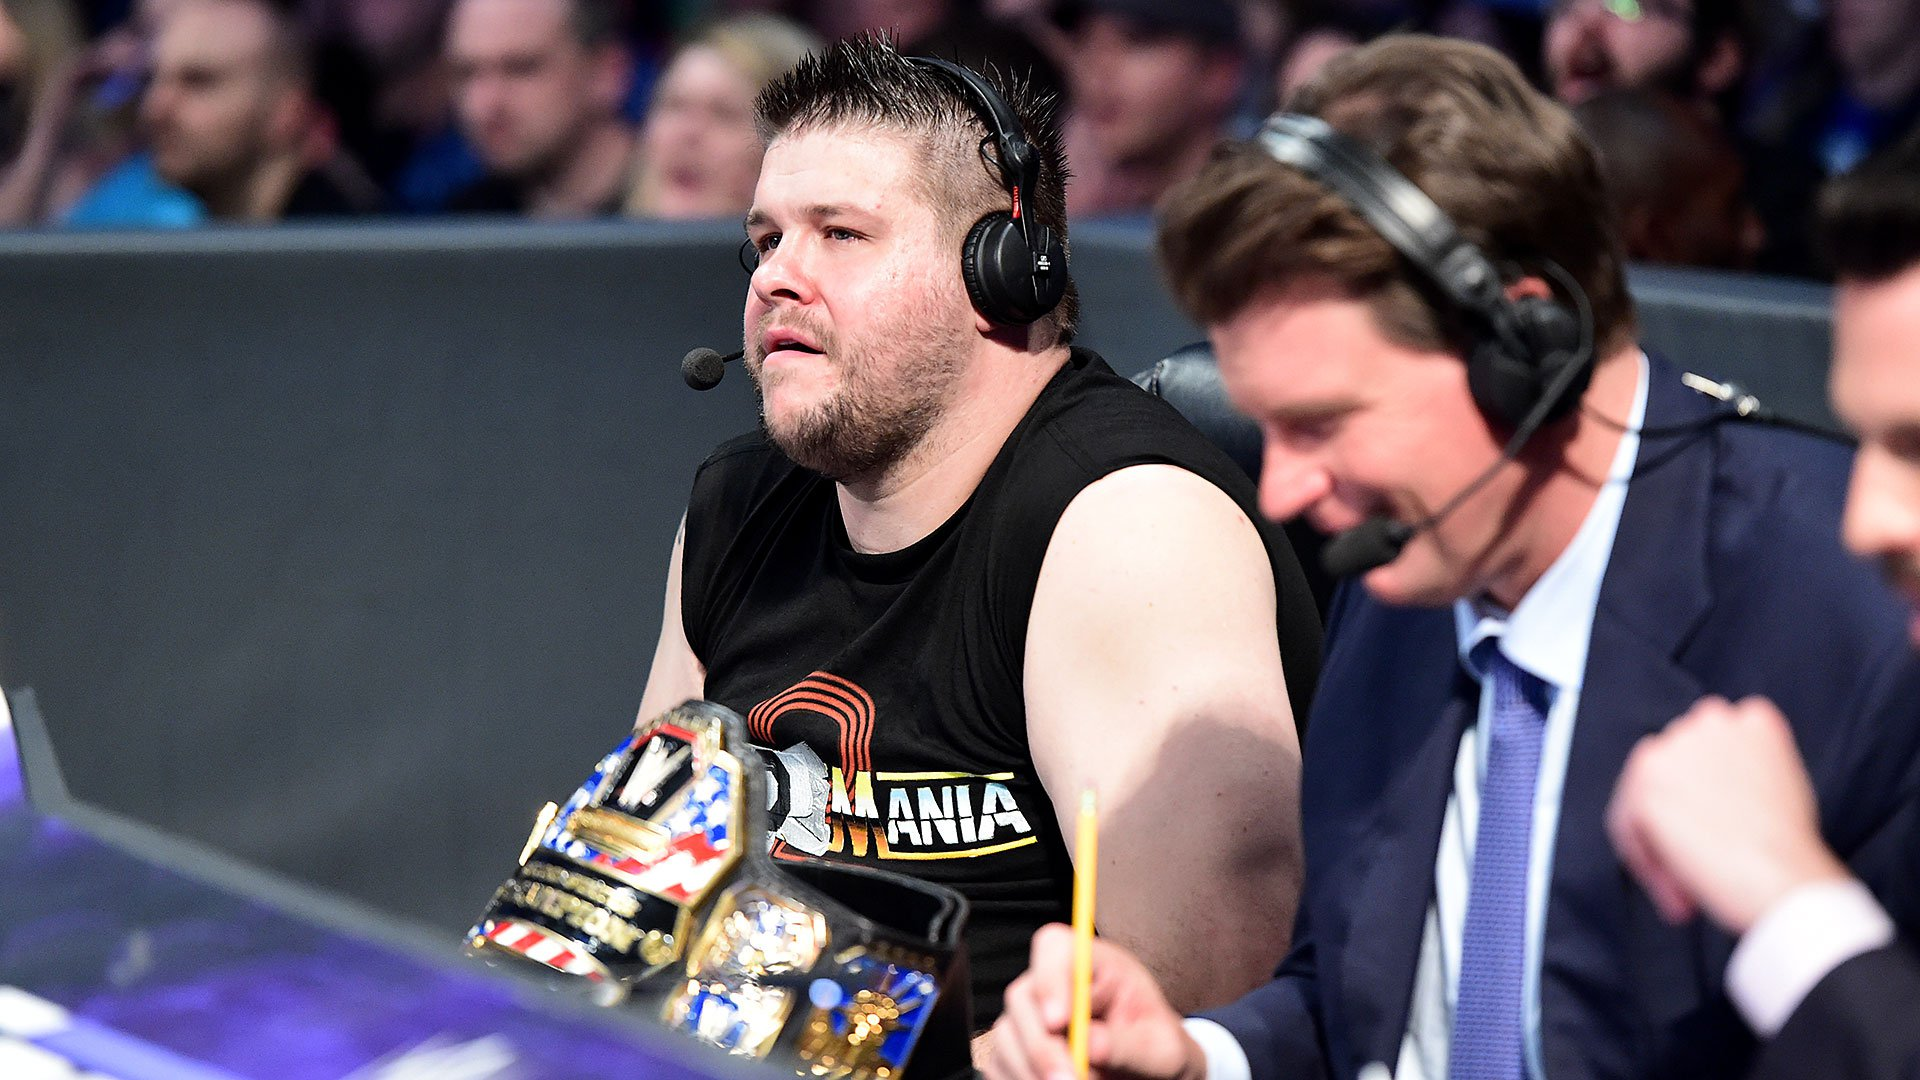 Kevin Owens offers his unique insights on commentary.